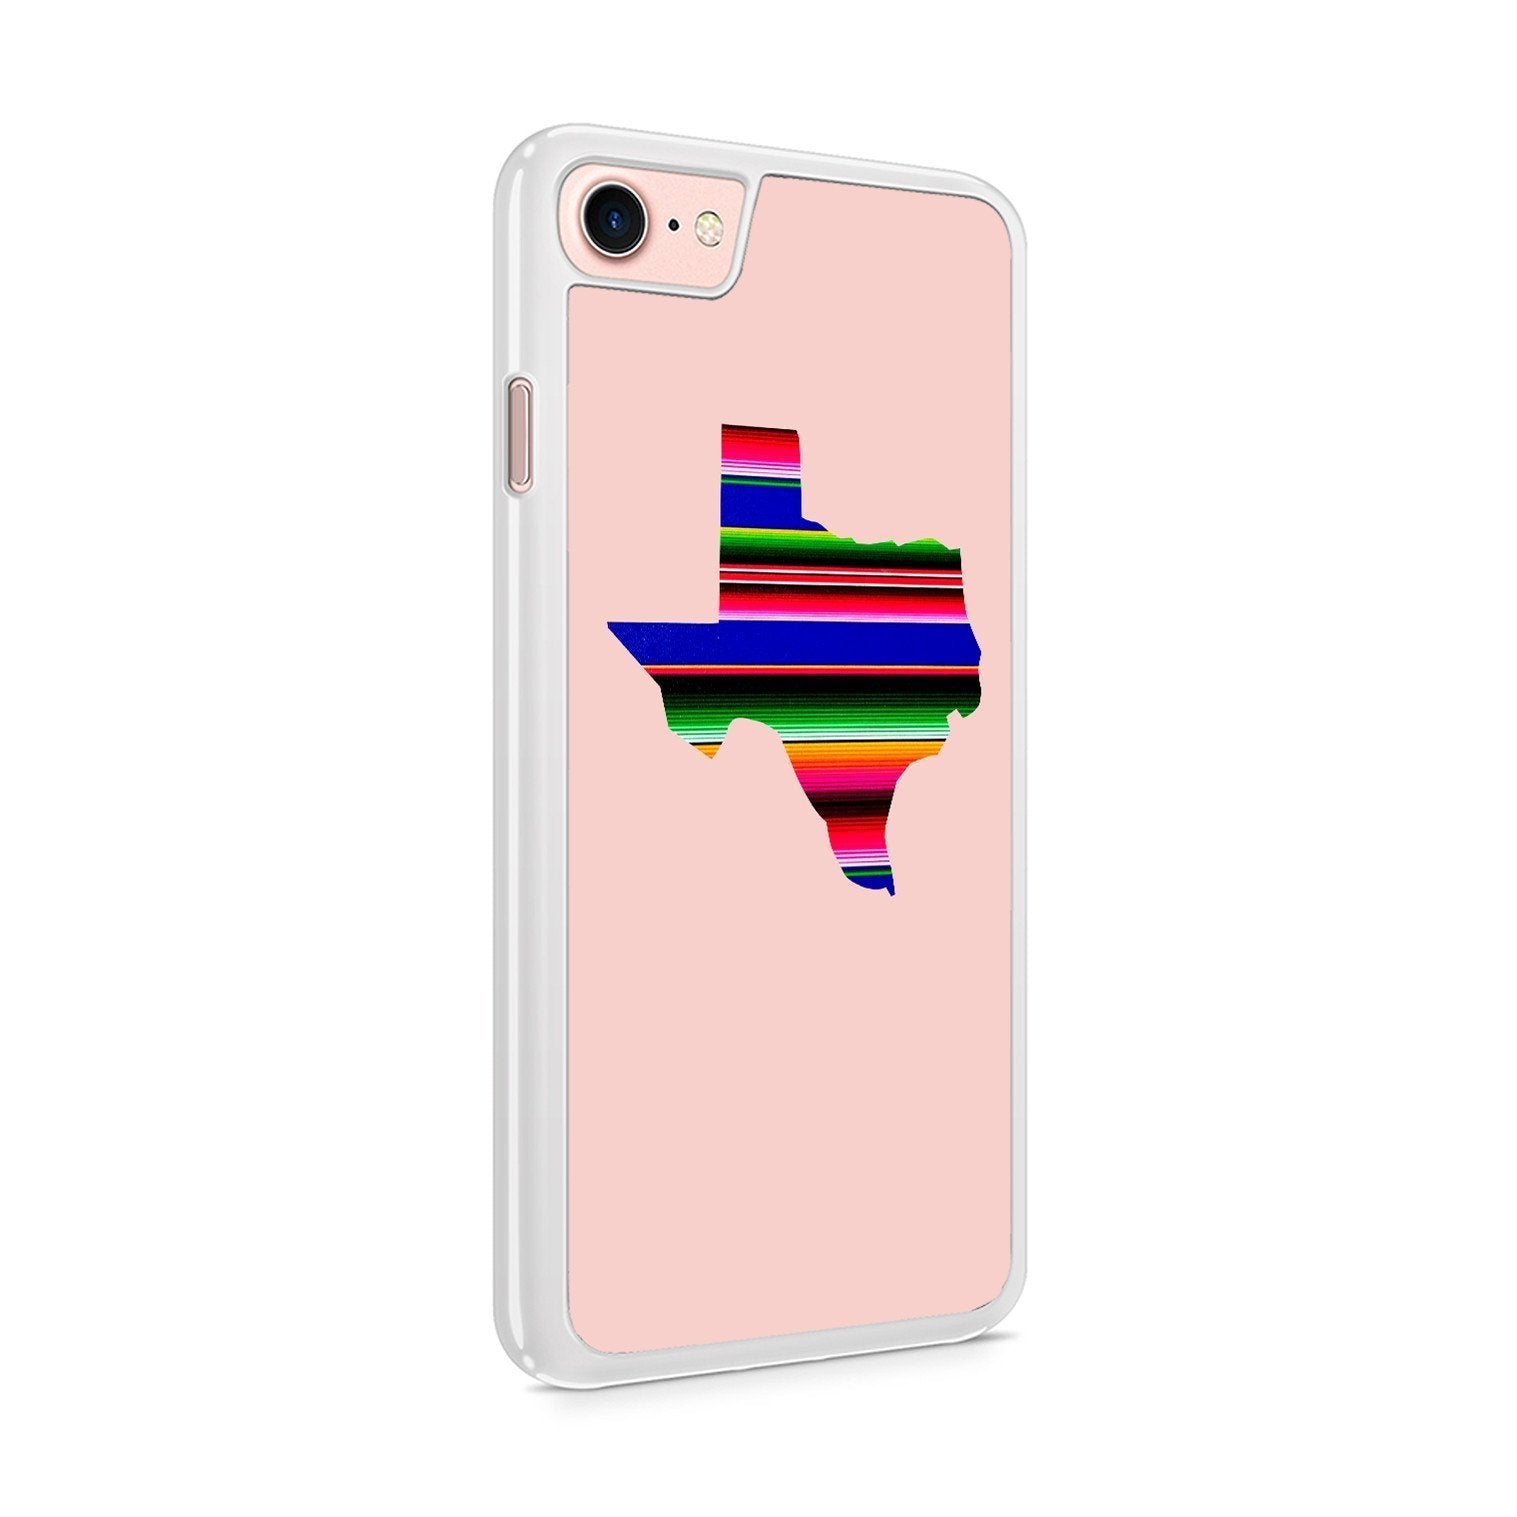 Serape Colorful Sweet Texas Treasures Aztec Falsa Fiesta Themed Texan Iphone 8 CasePlus / 5 / 5S / 5C Case